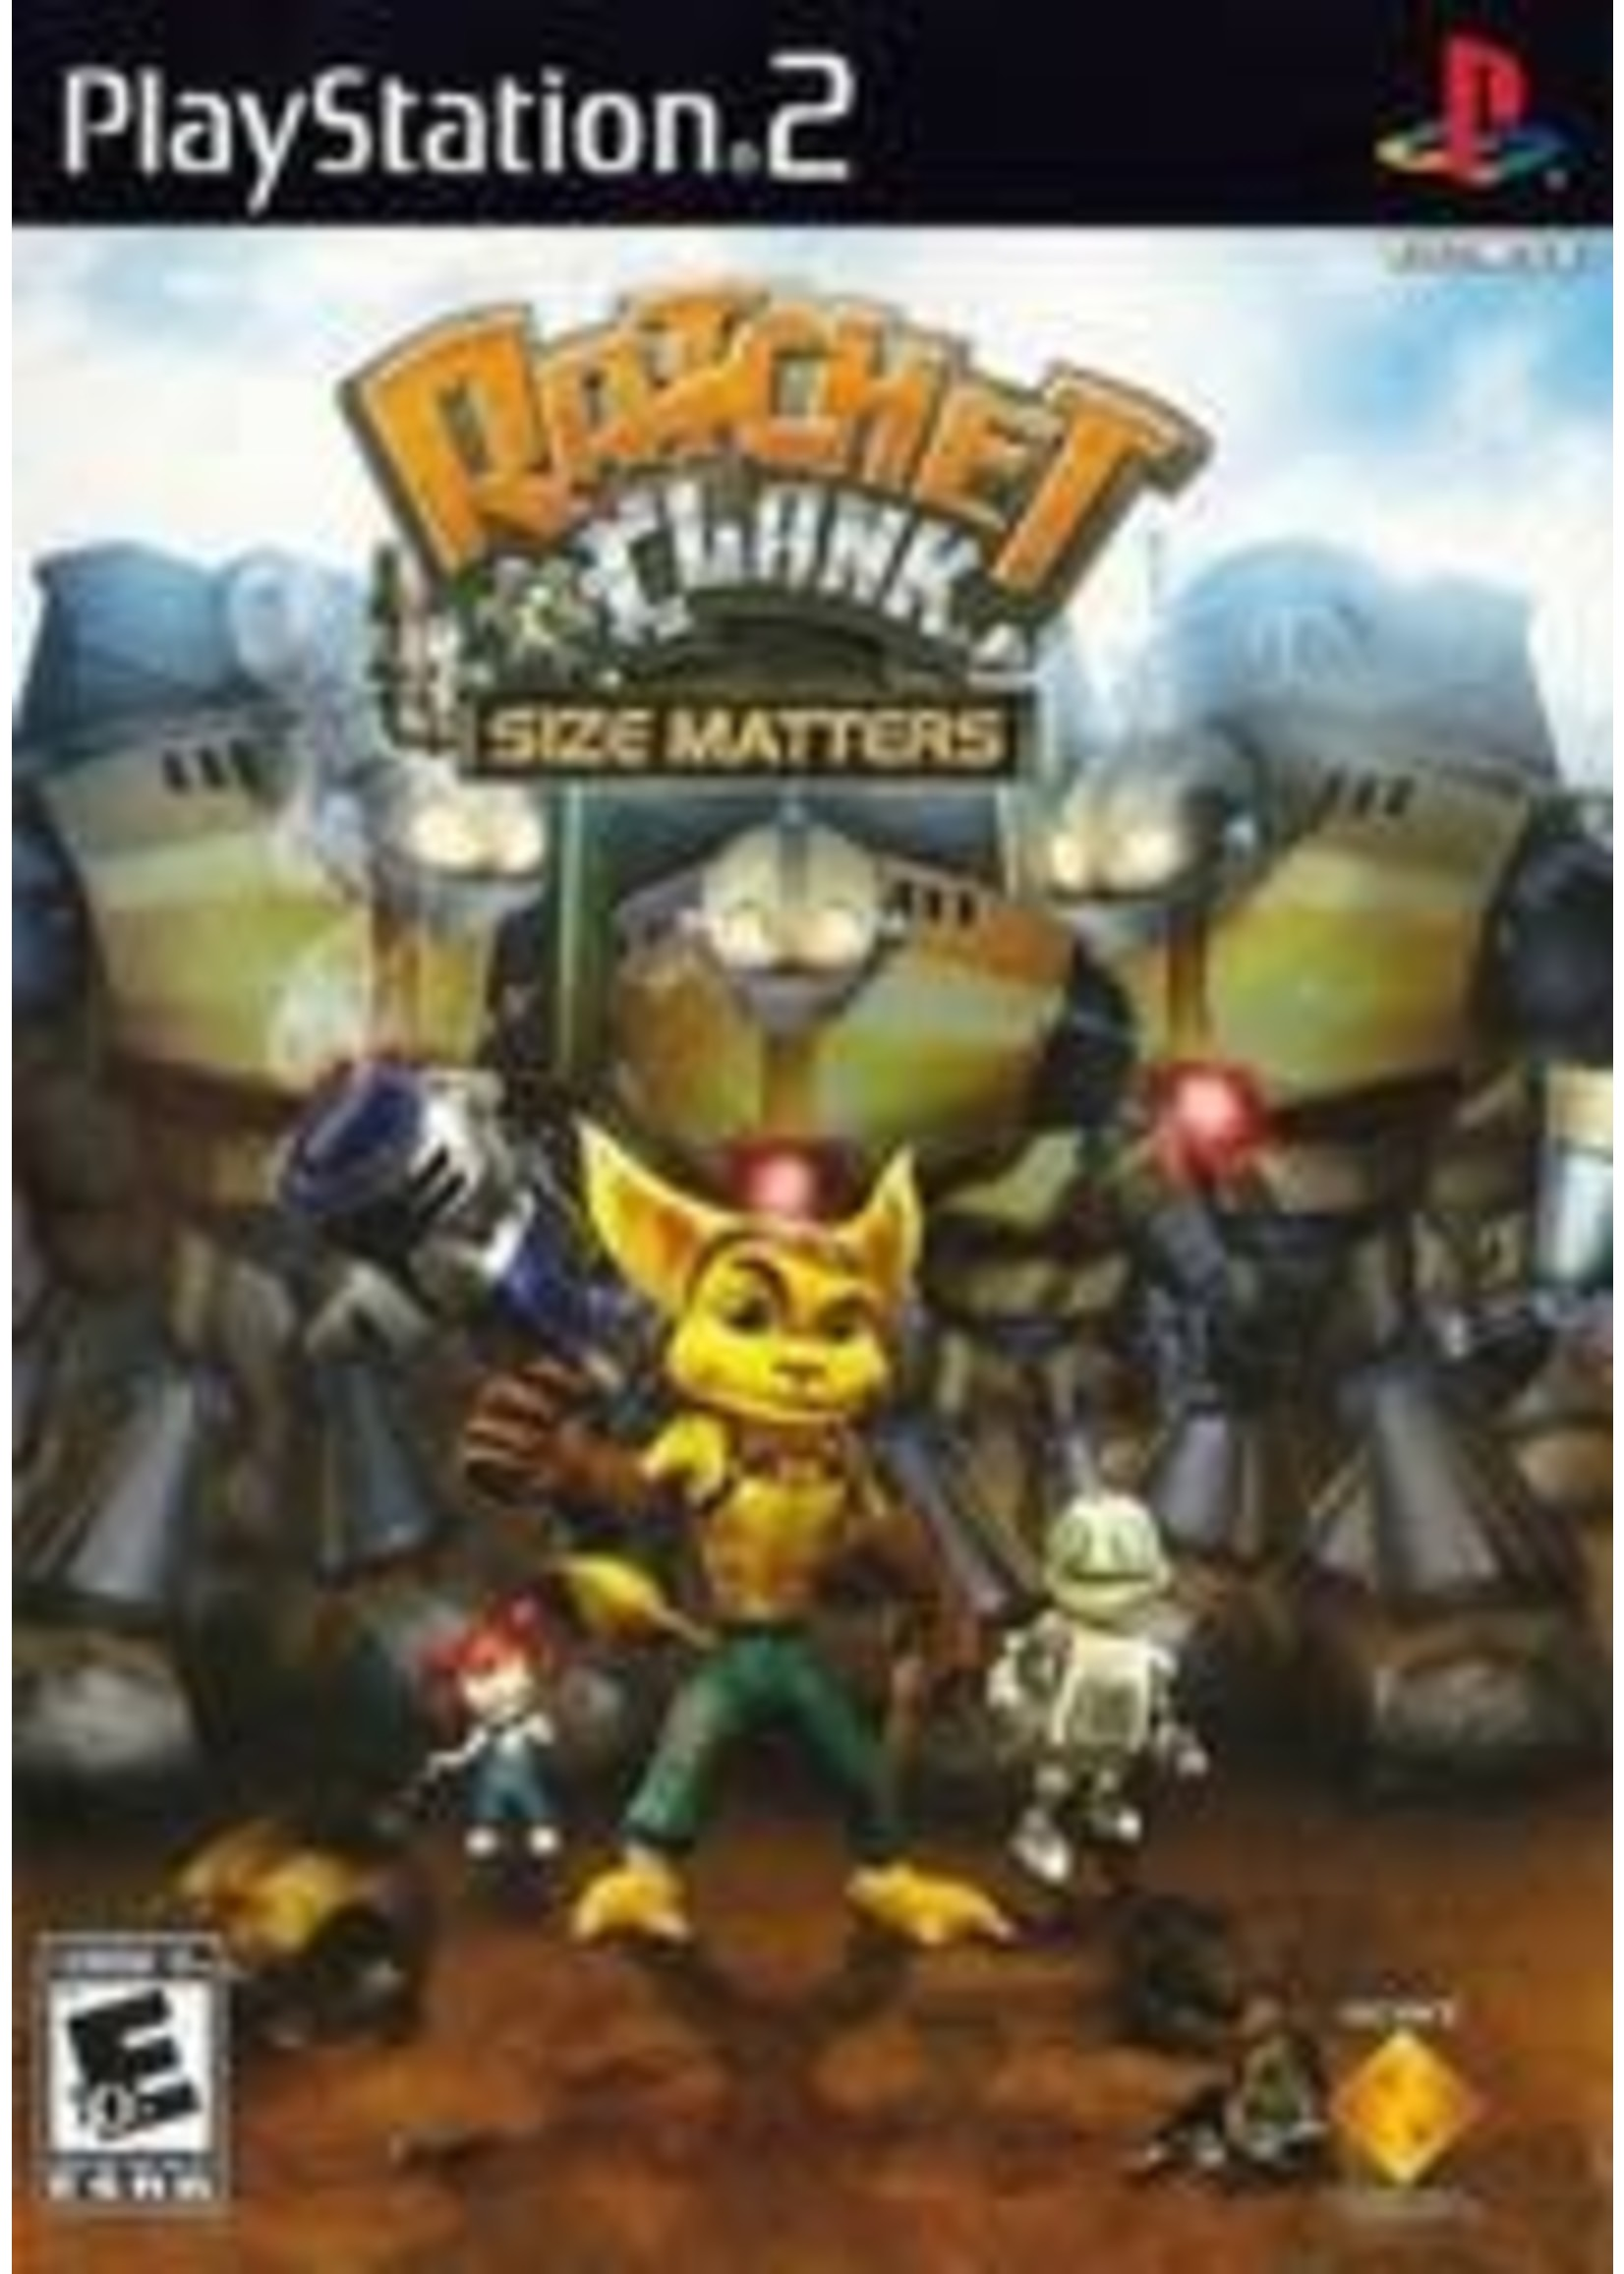 Ratchet And Clank Size Matters Playstation 2